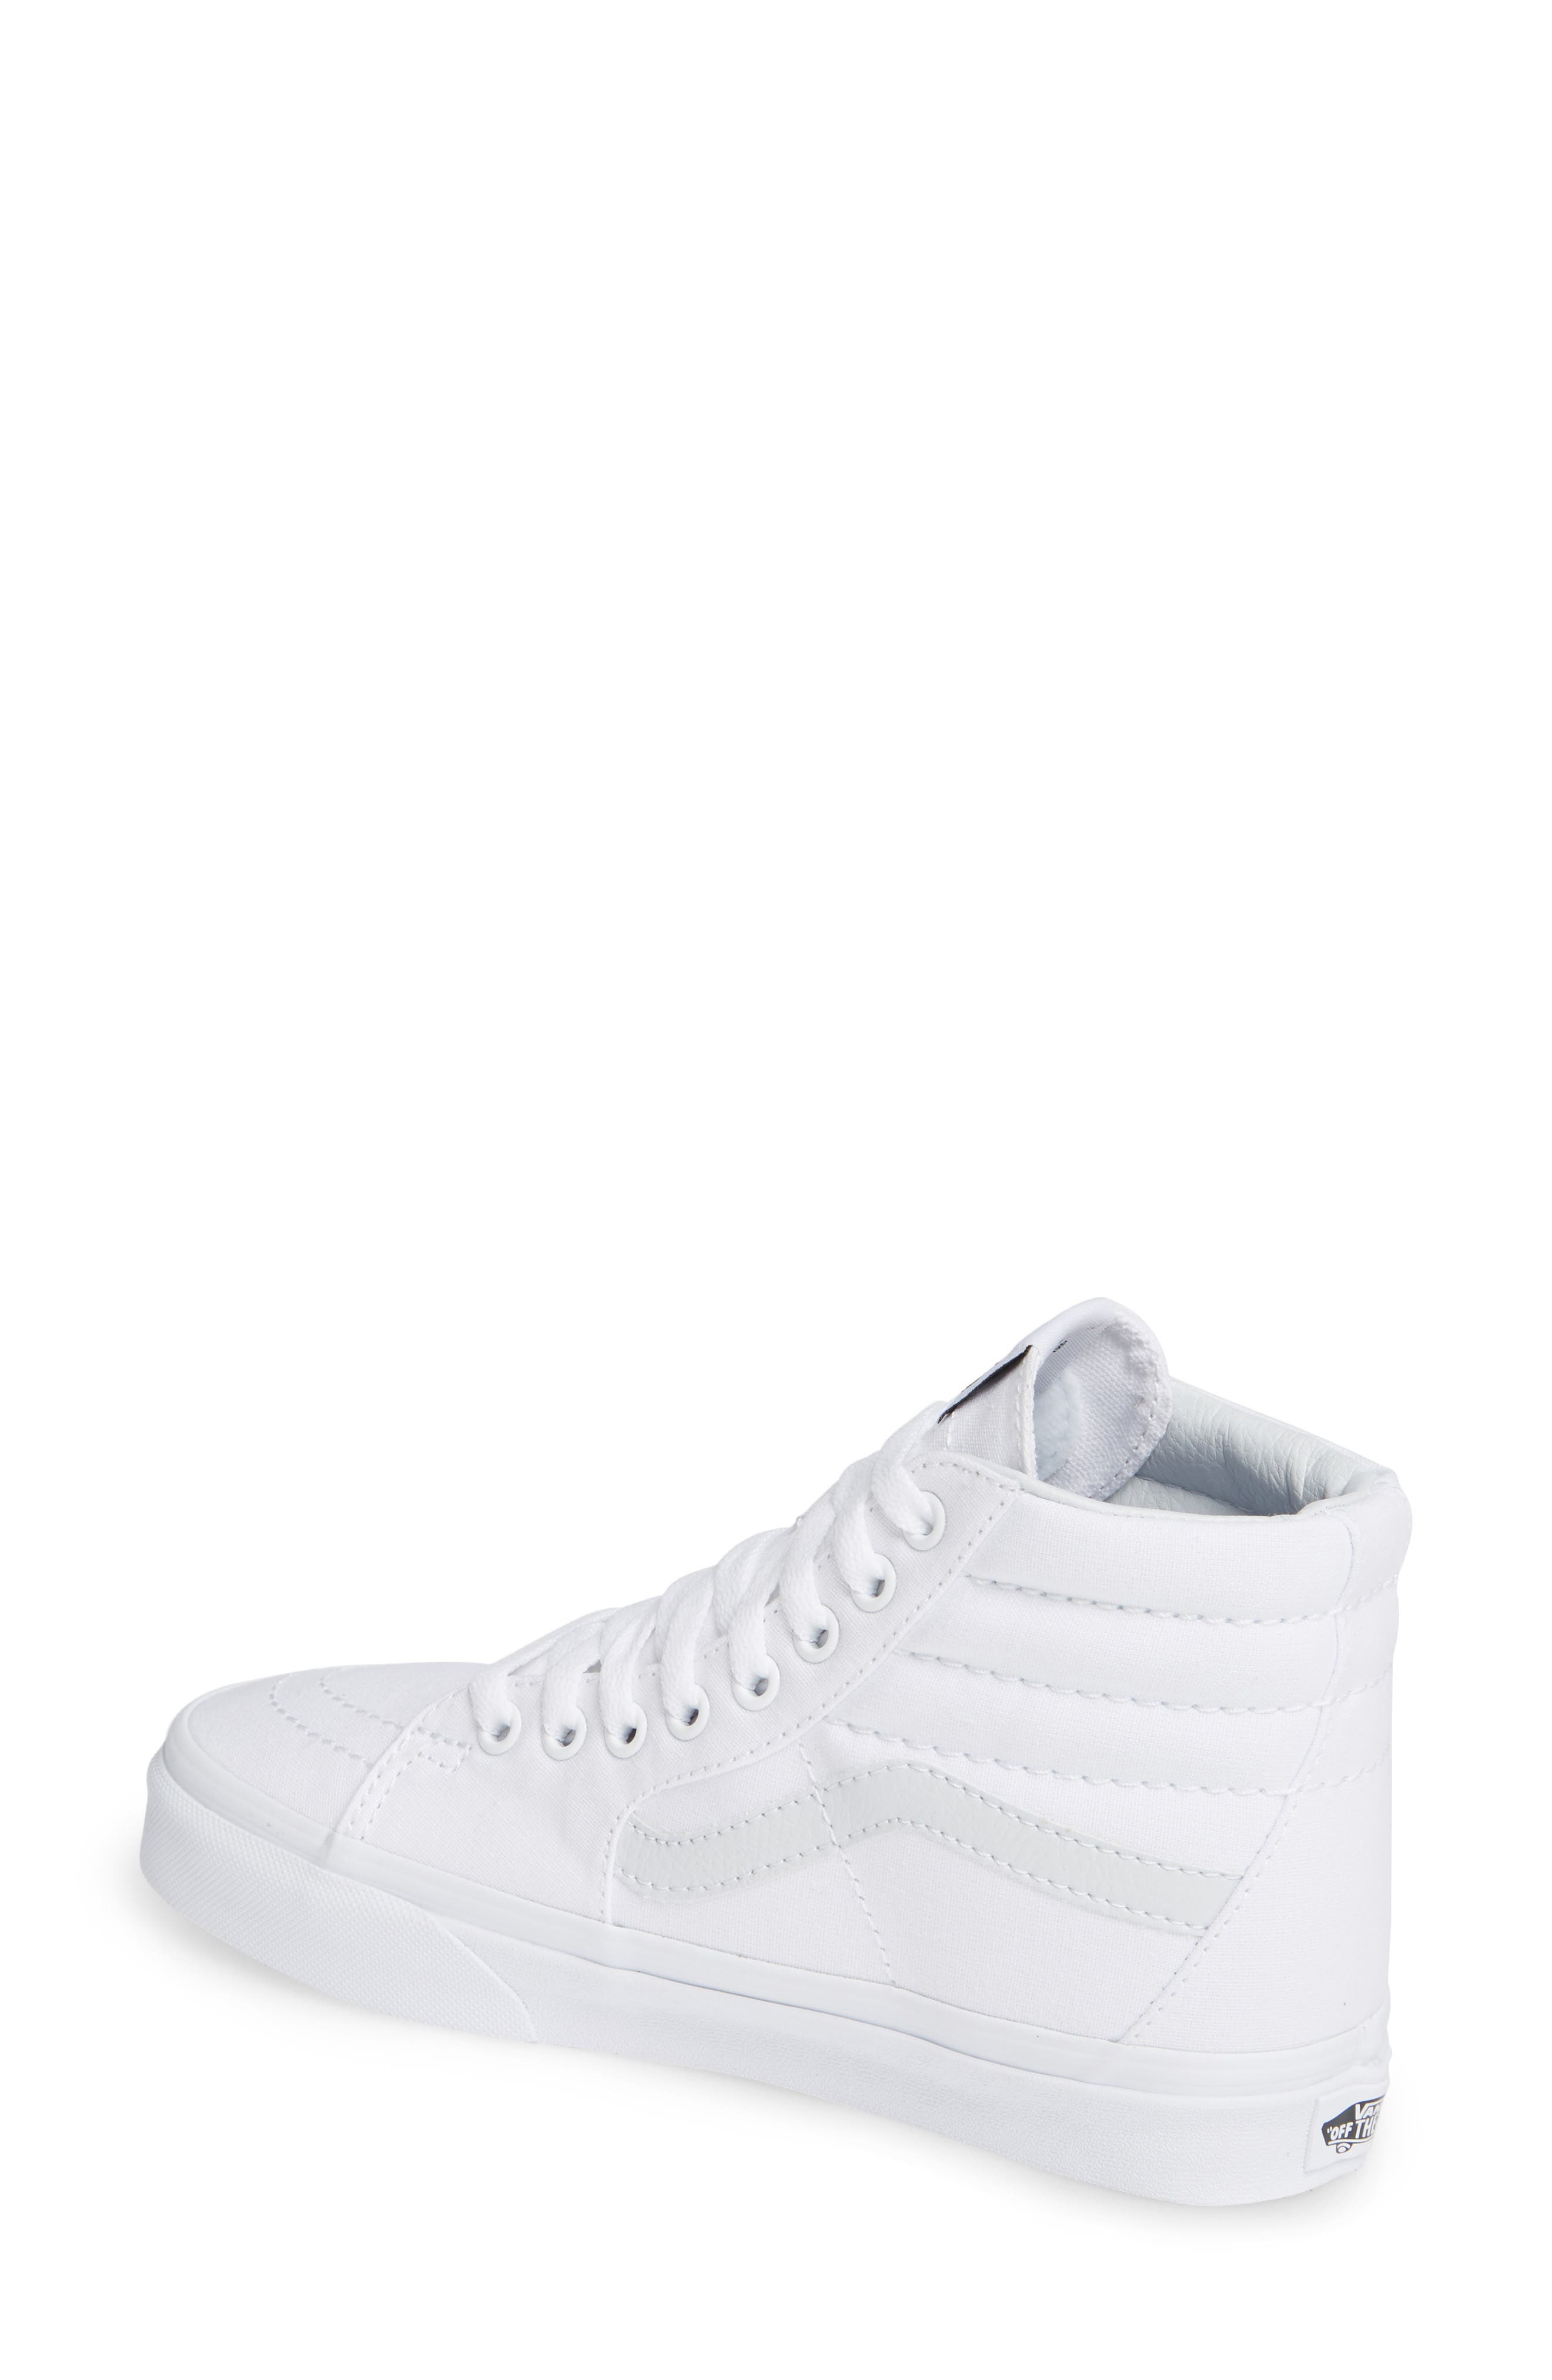 High Tops  High-Top Sneakers for Women  38e5a9fbf